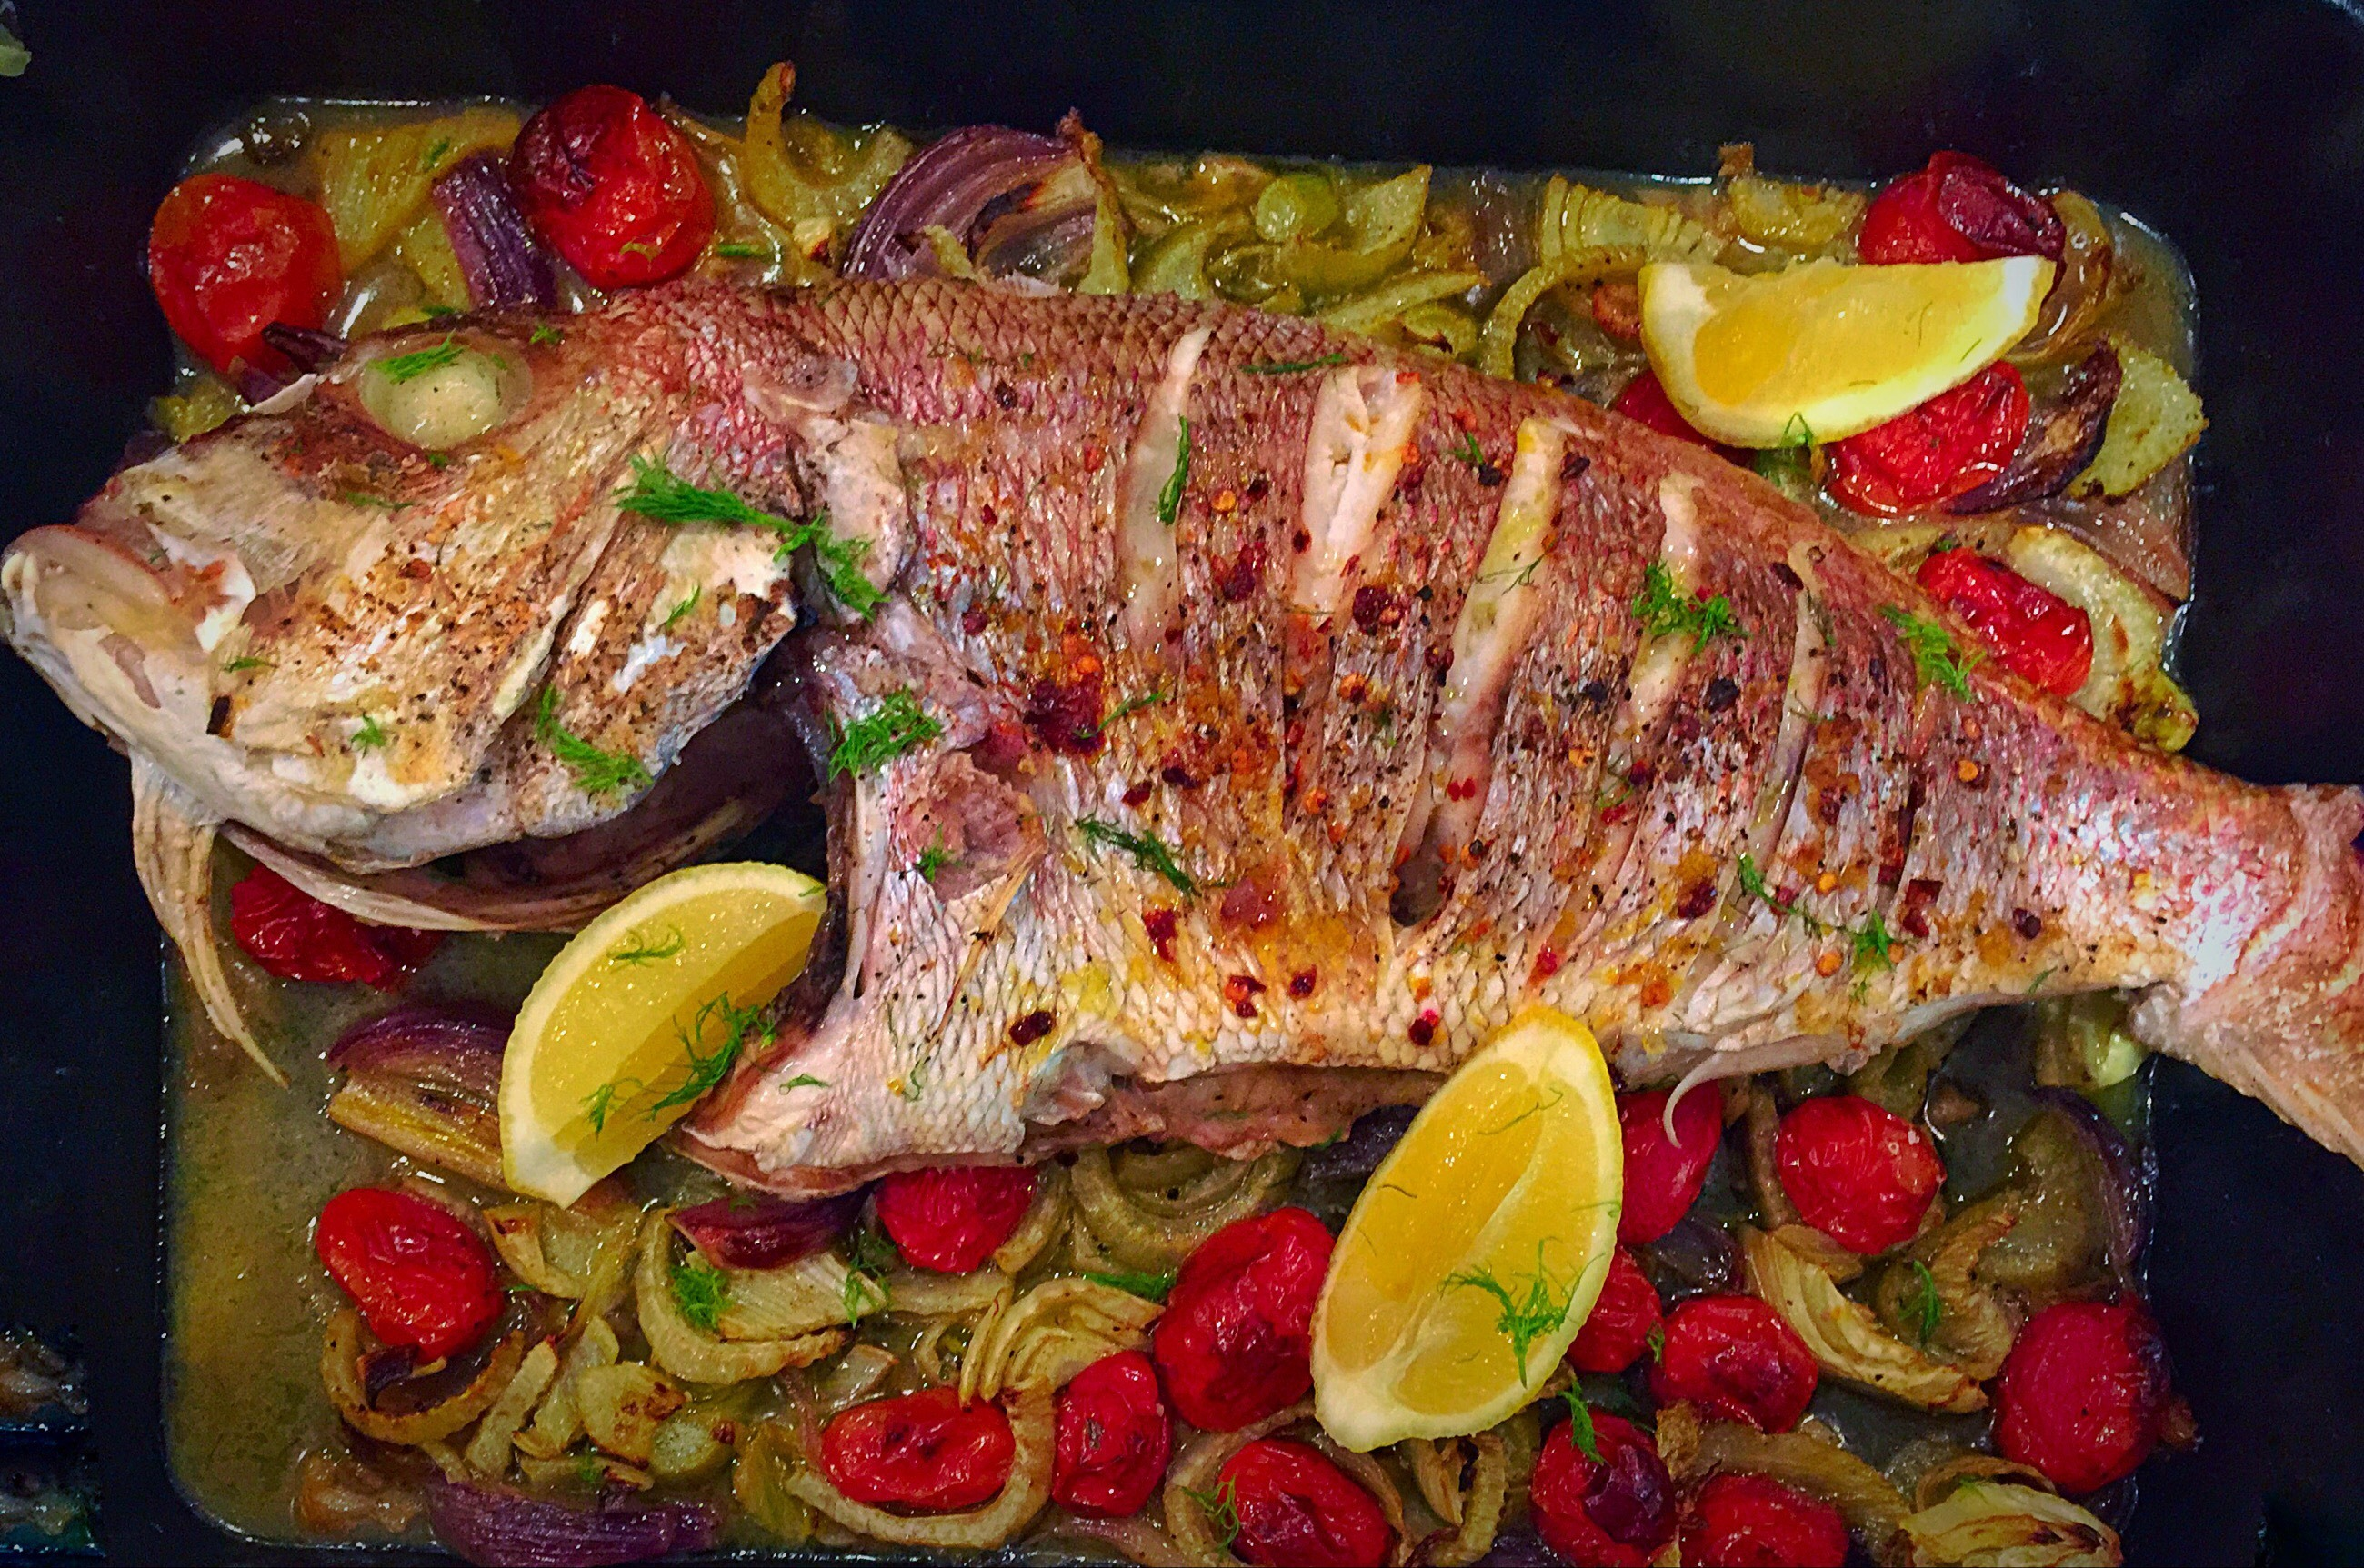 Whole Baked Fish with Fennel, Tomato & Pine Nuts